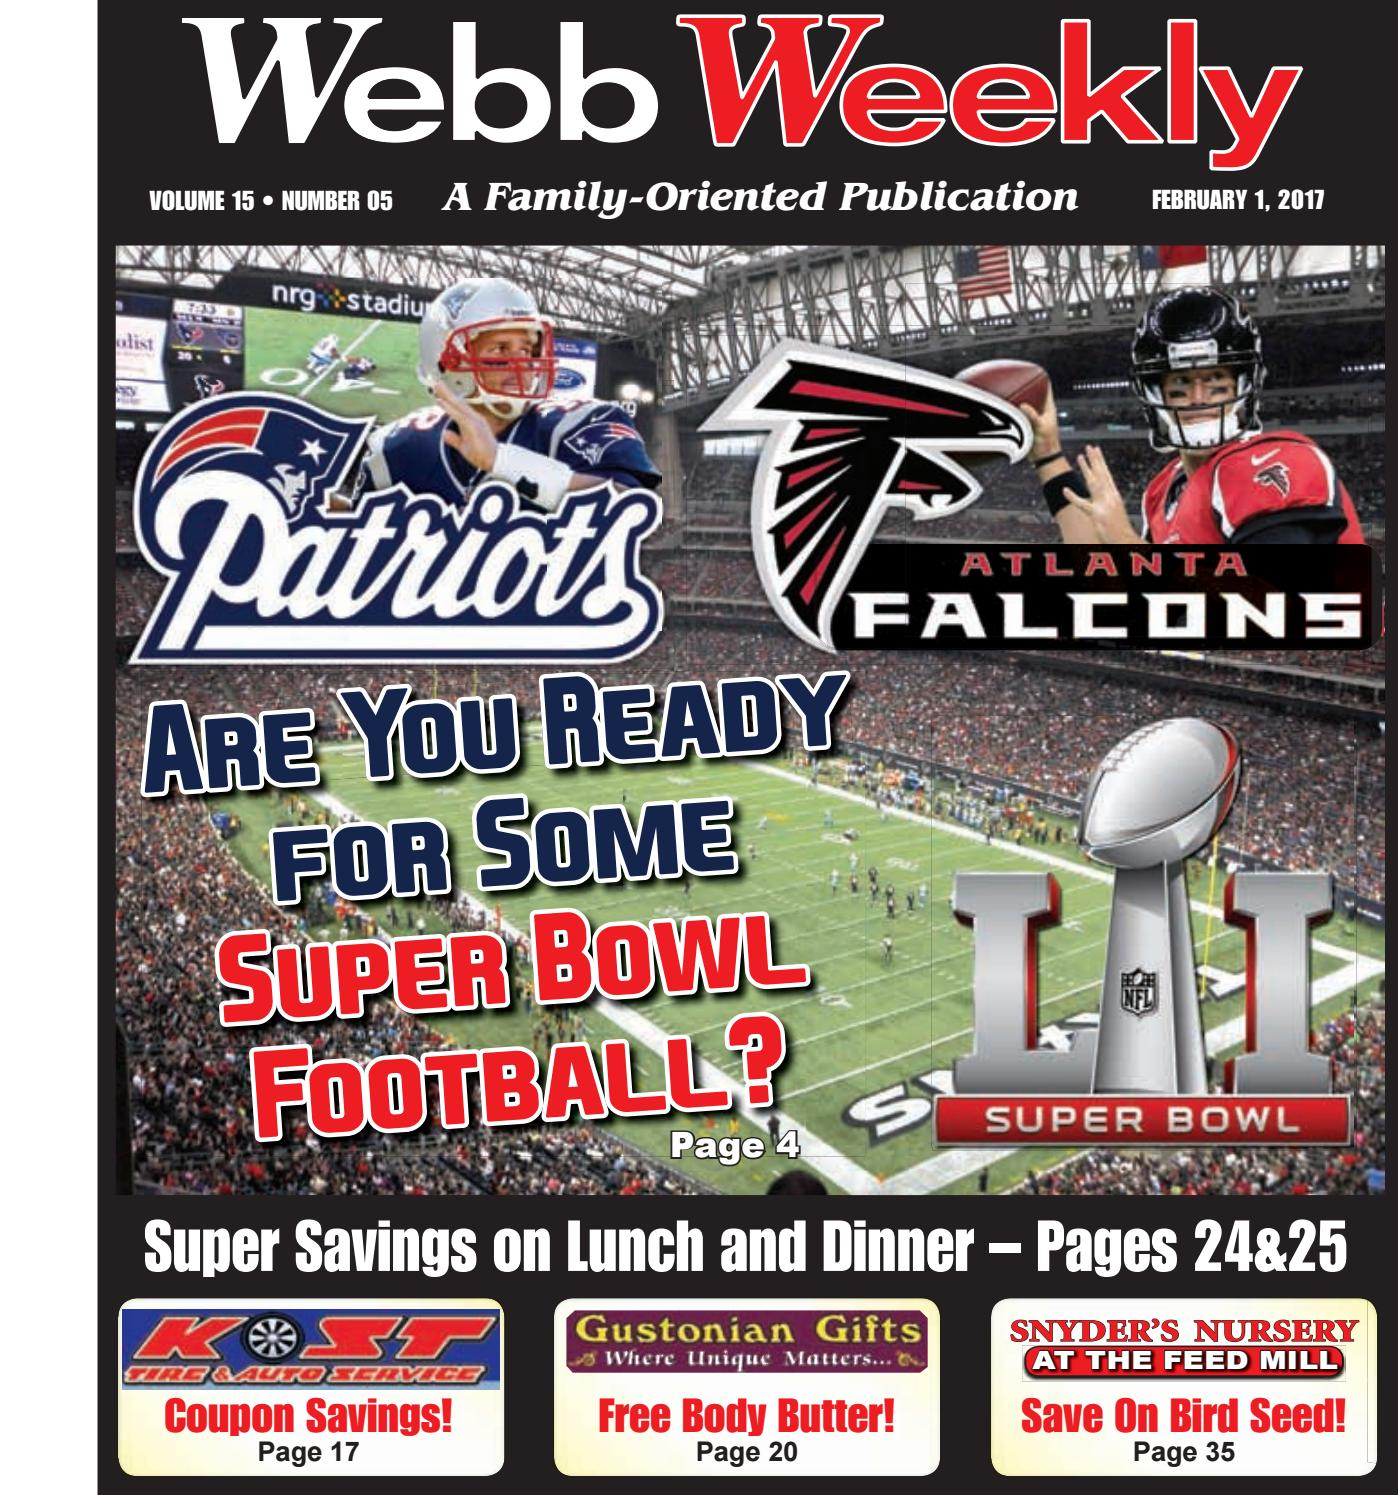 Webb Weekly February 1, 2017 by Webb Weekly - issuu